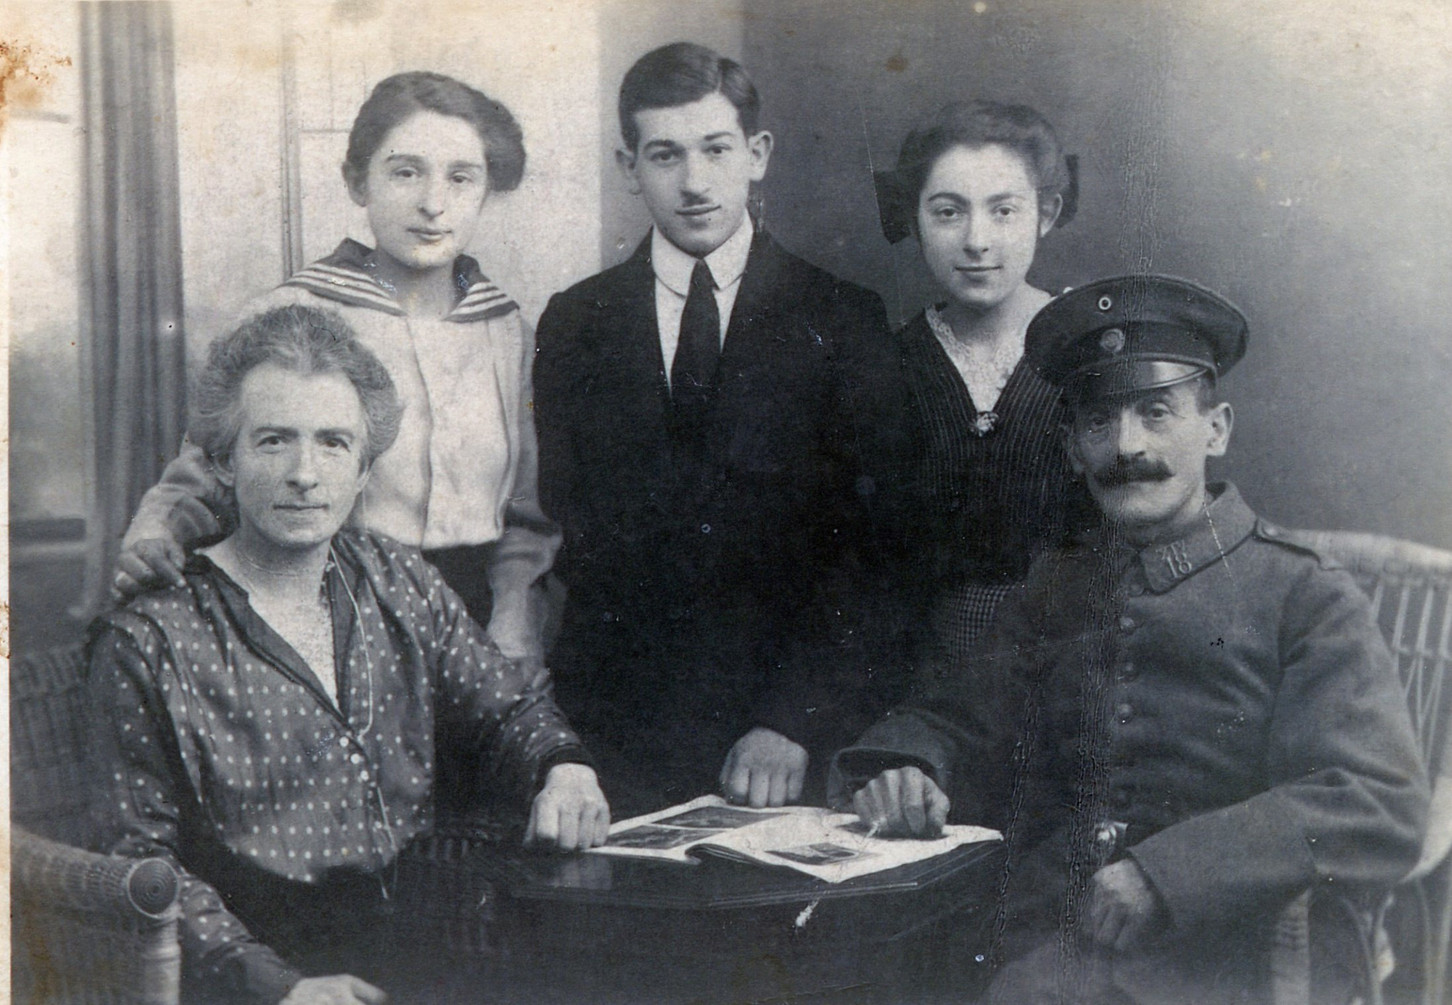 Father's parents with his siblings (left to right standing) Johanna, Kurt and Paula